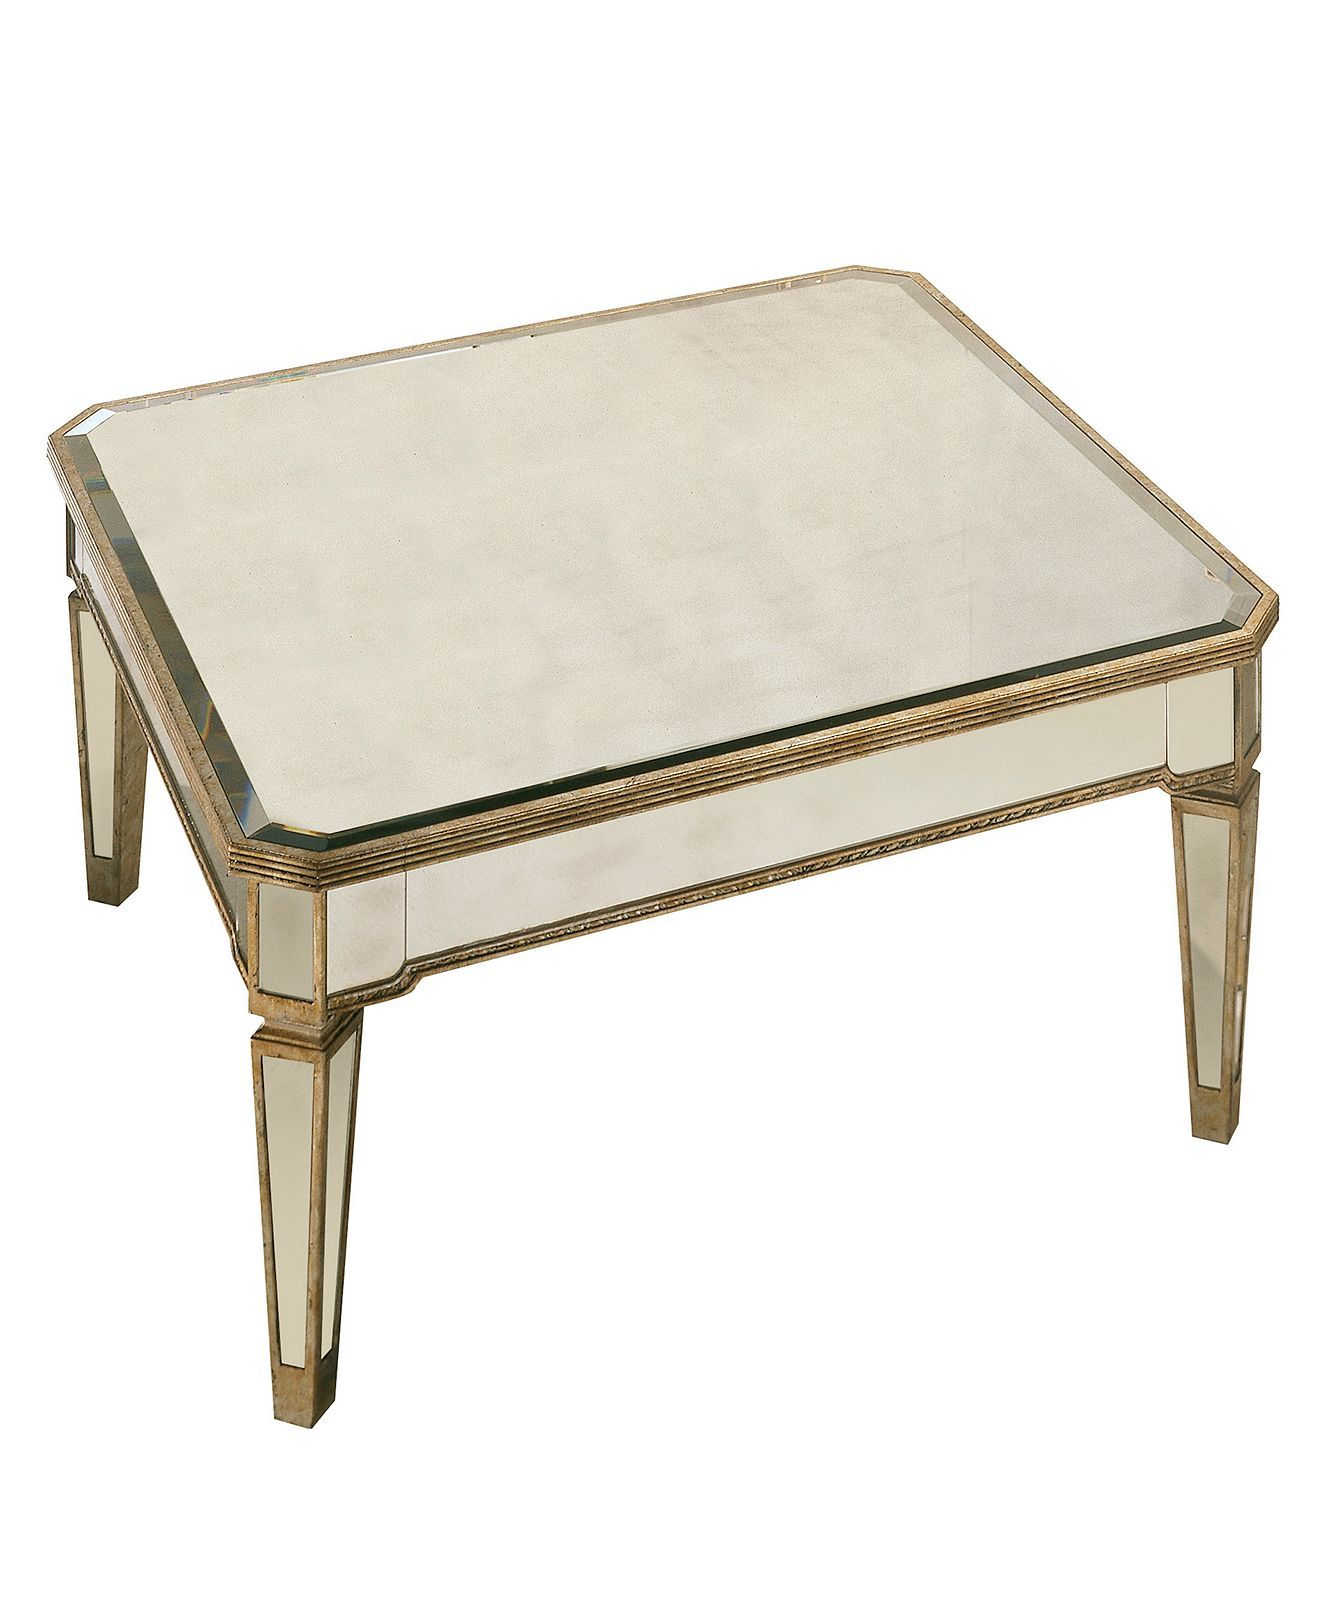 Glass Coffee Table Macys: Look Good With Claudia Sofa And The Kaylan Credenza